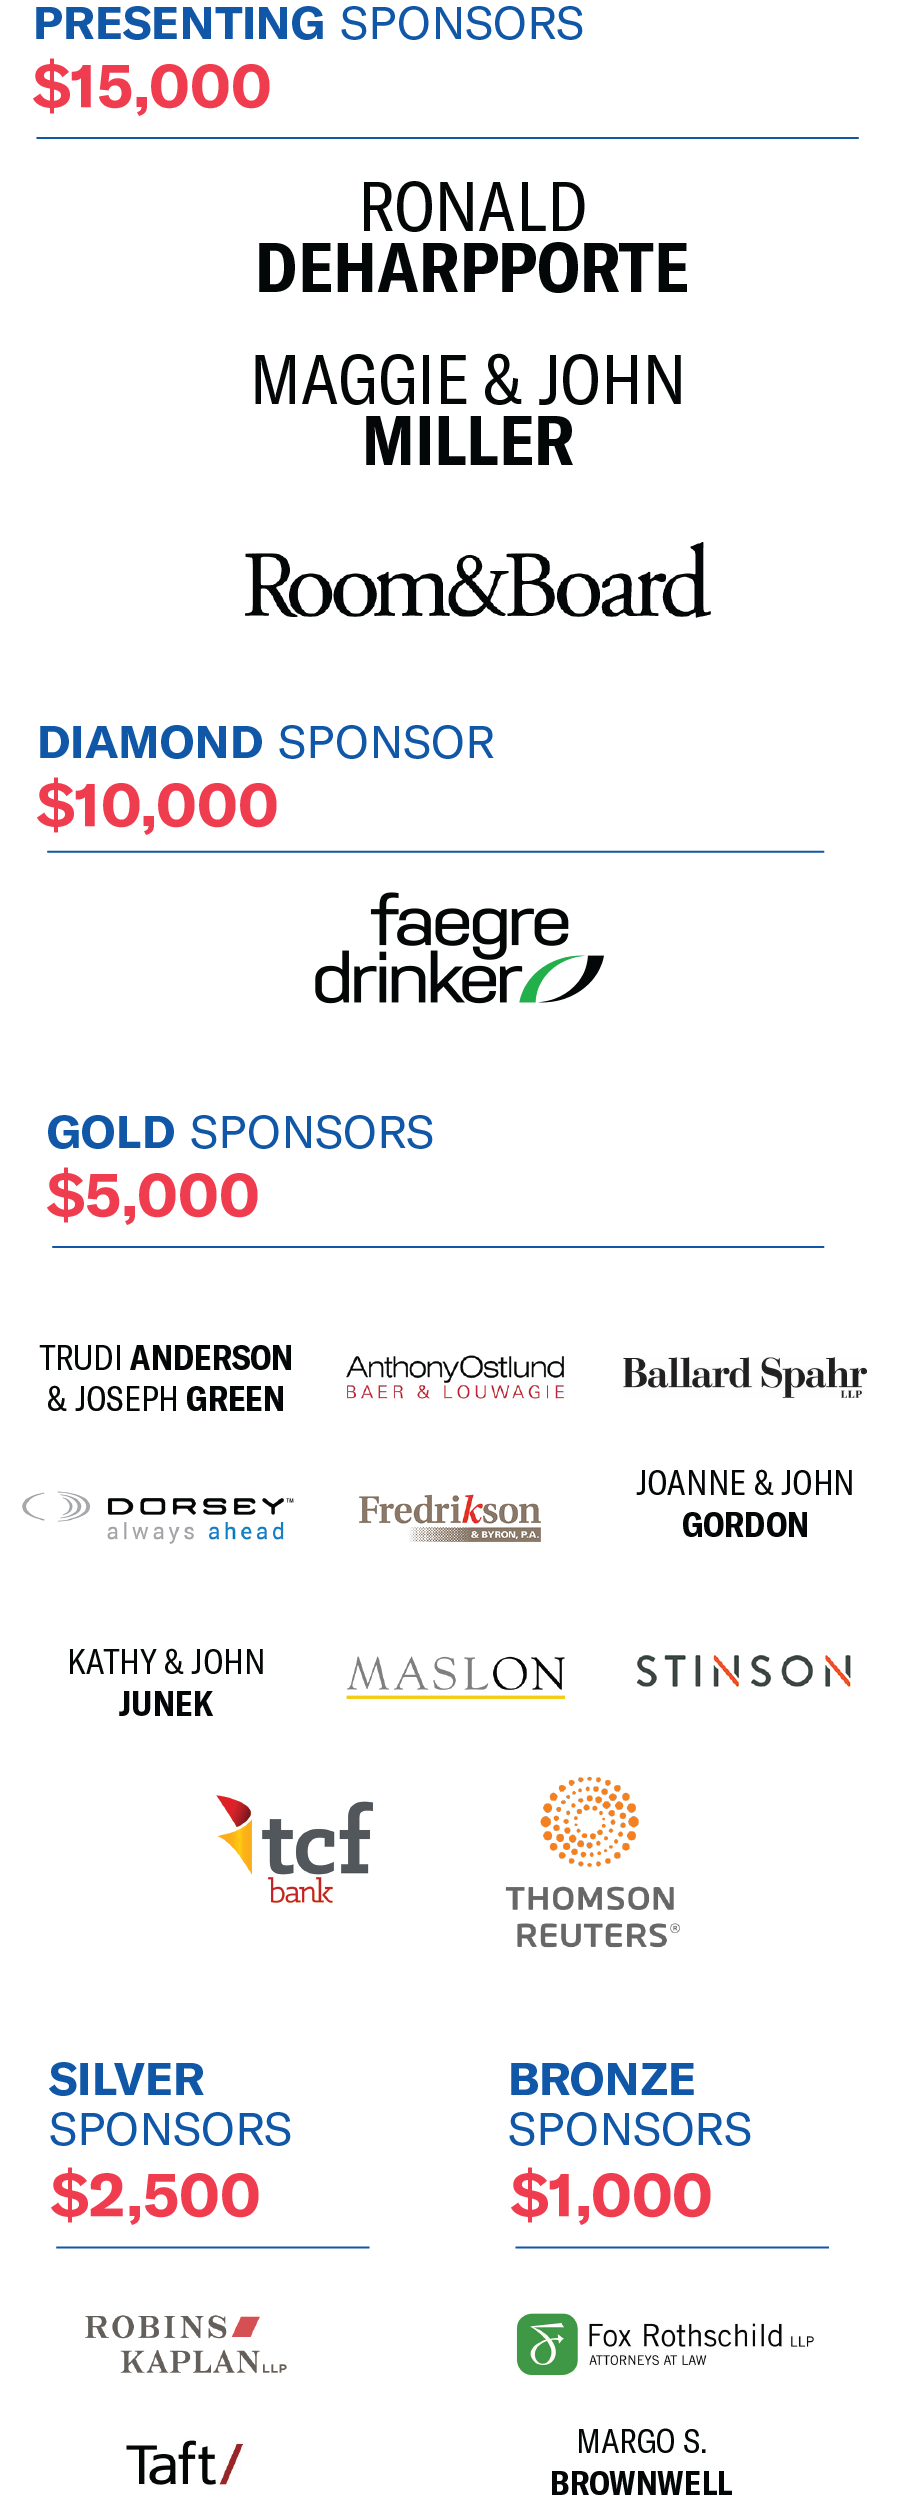 List of event sponsors